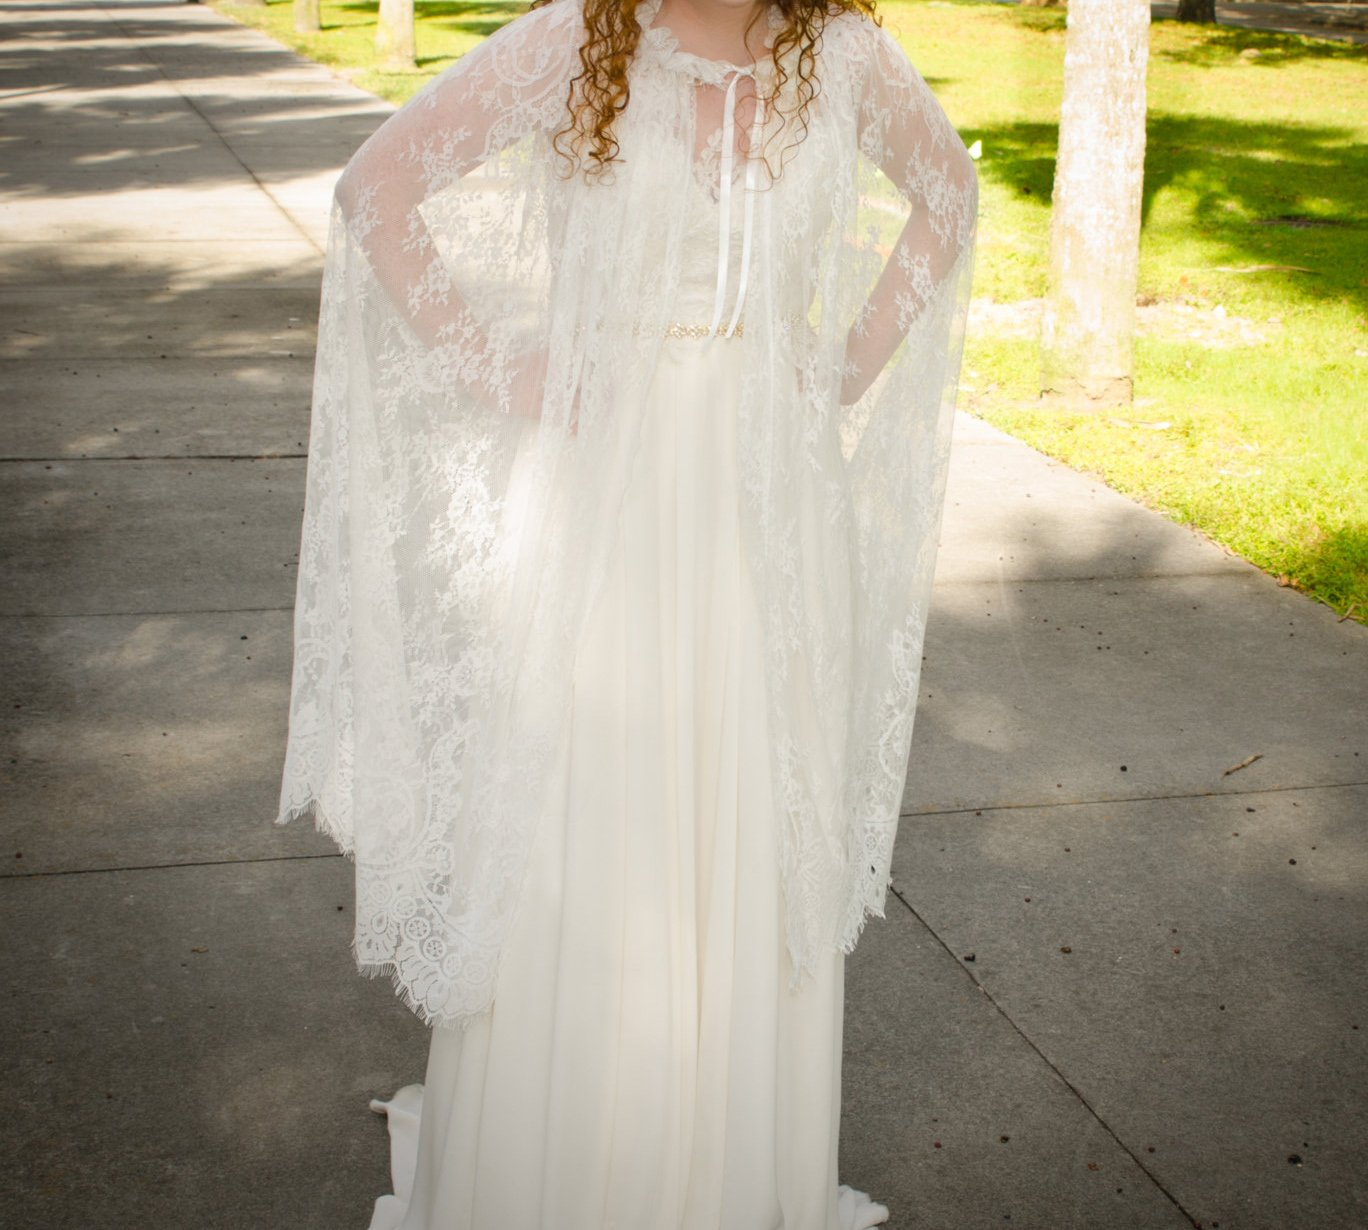 YuRong Long Bridal Shawls Wrap Lace Applique Scarf Capes Lace Cover Up C04 (Ivory) by YuRong (Image #3)